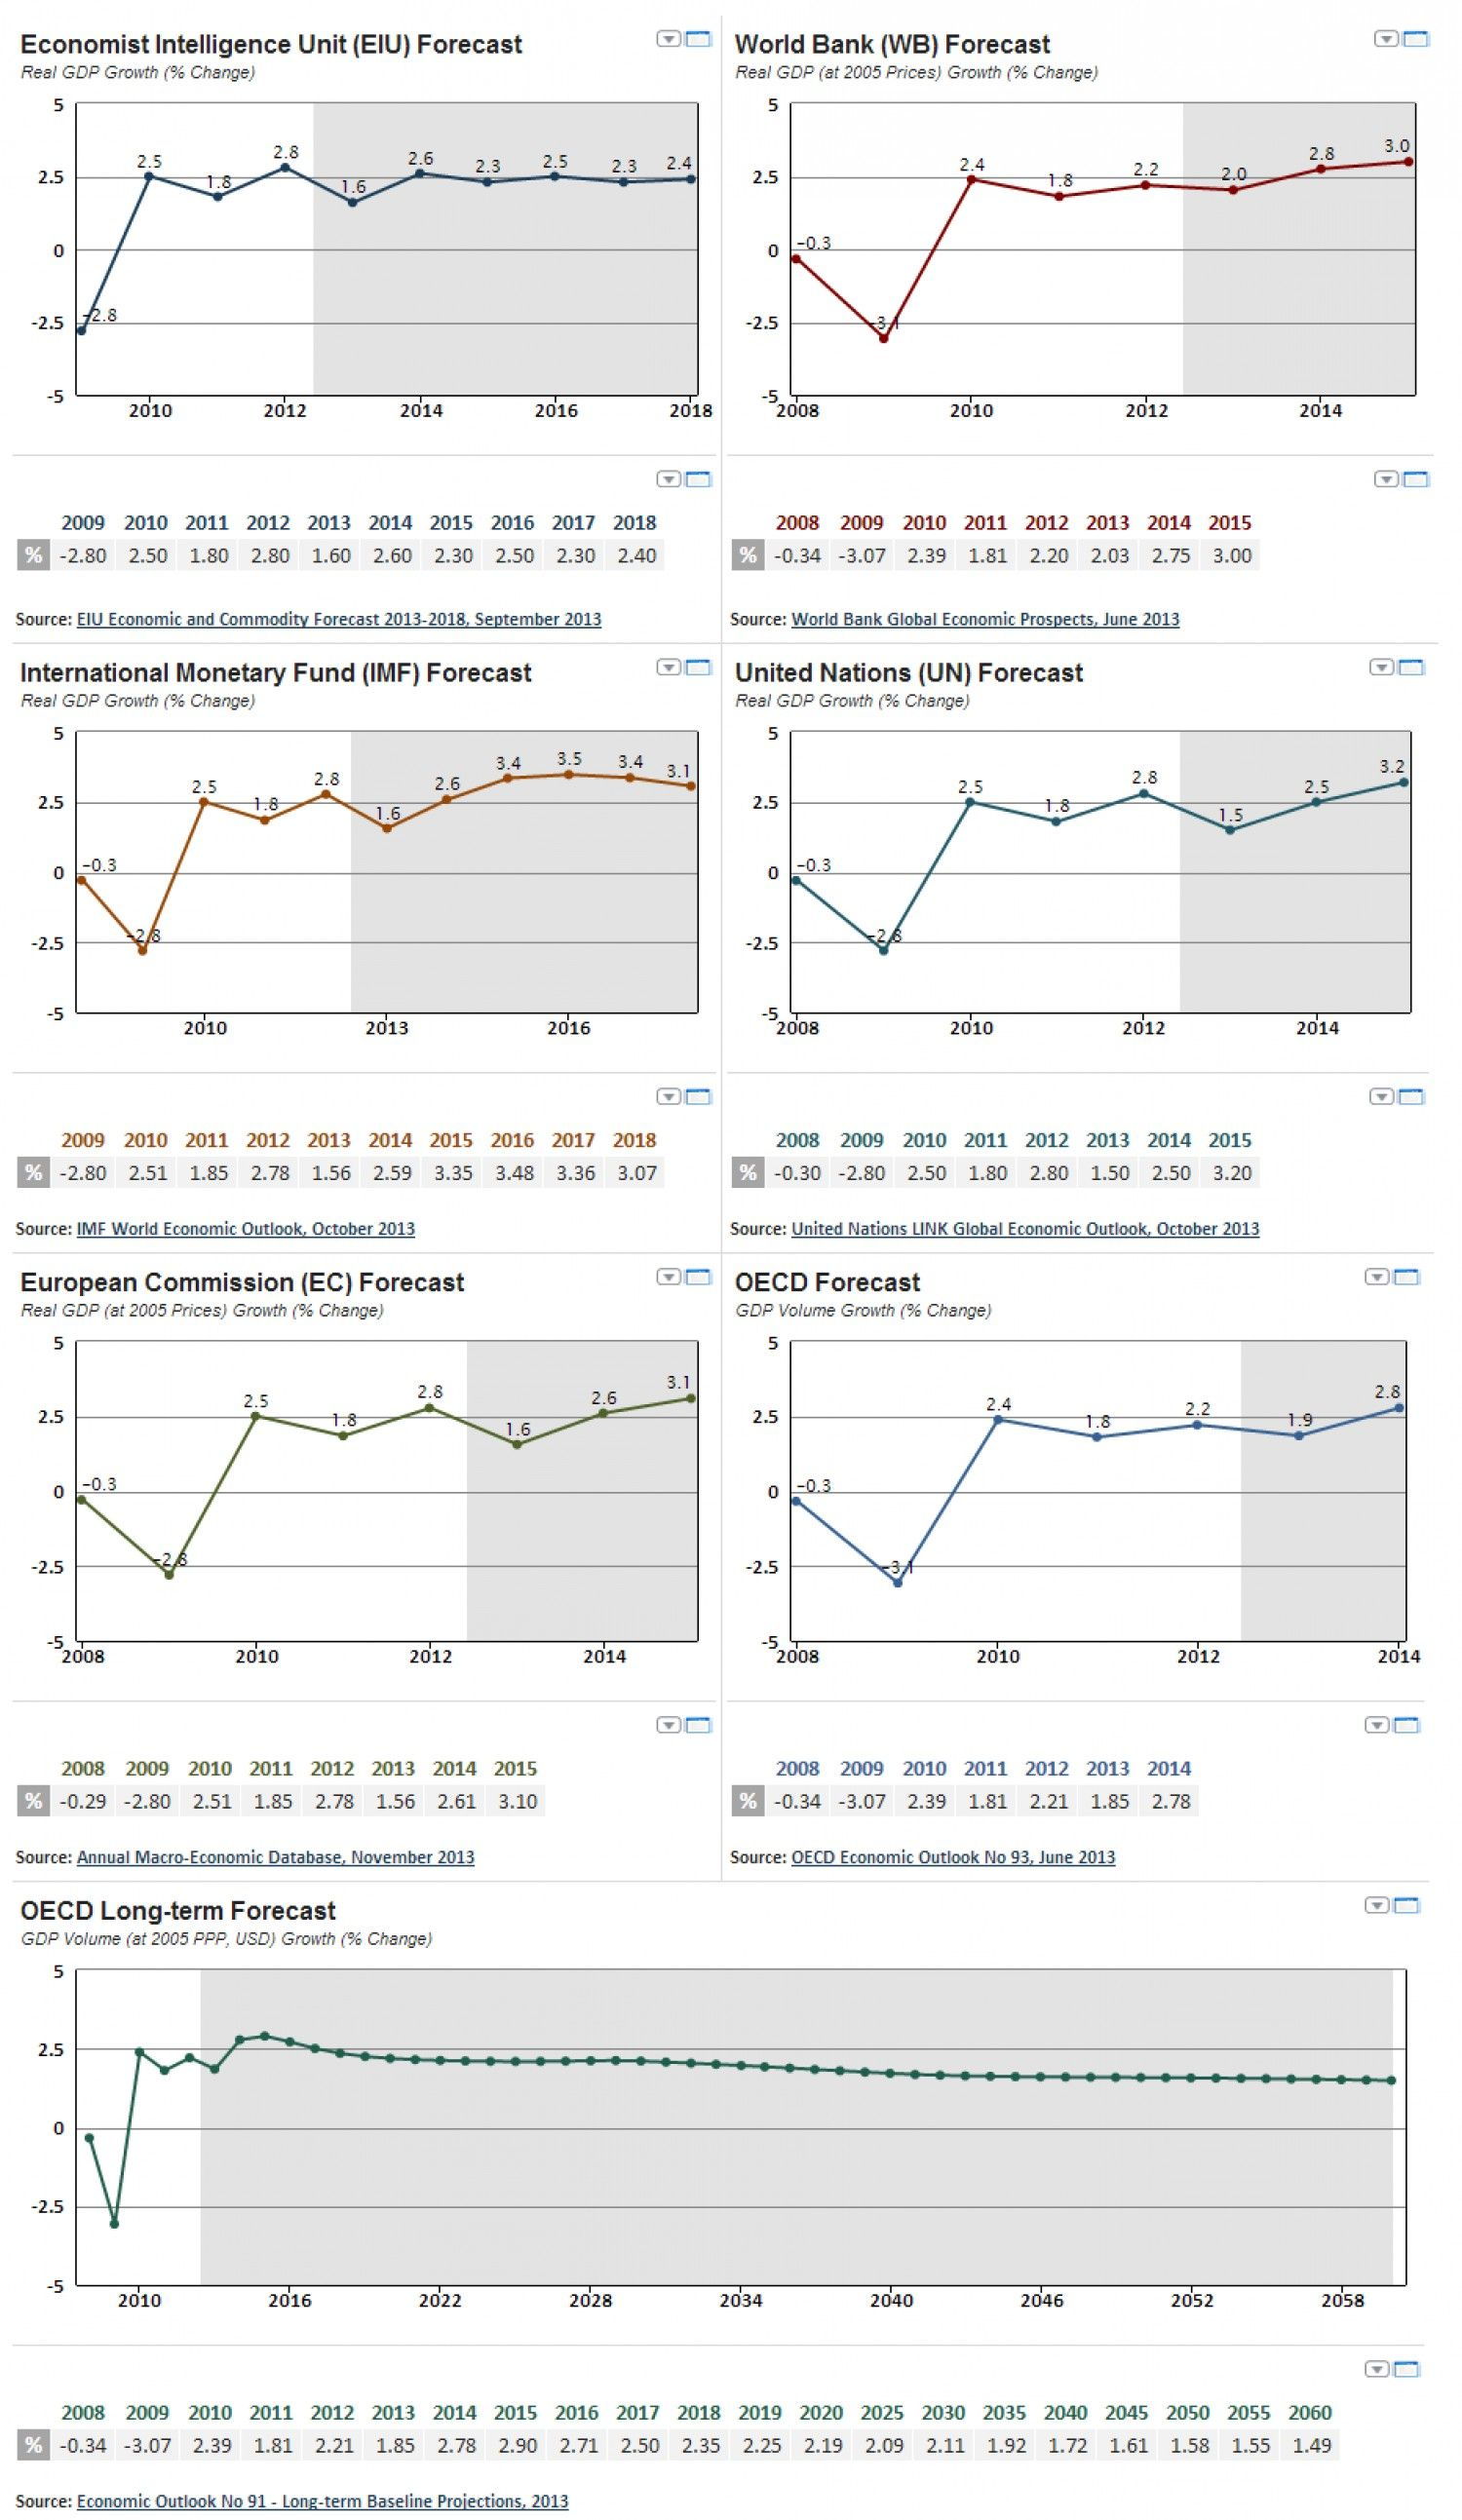 G20 Economic Forecast 2013-2015 and up to 2060